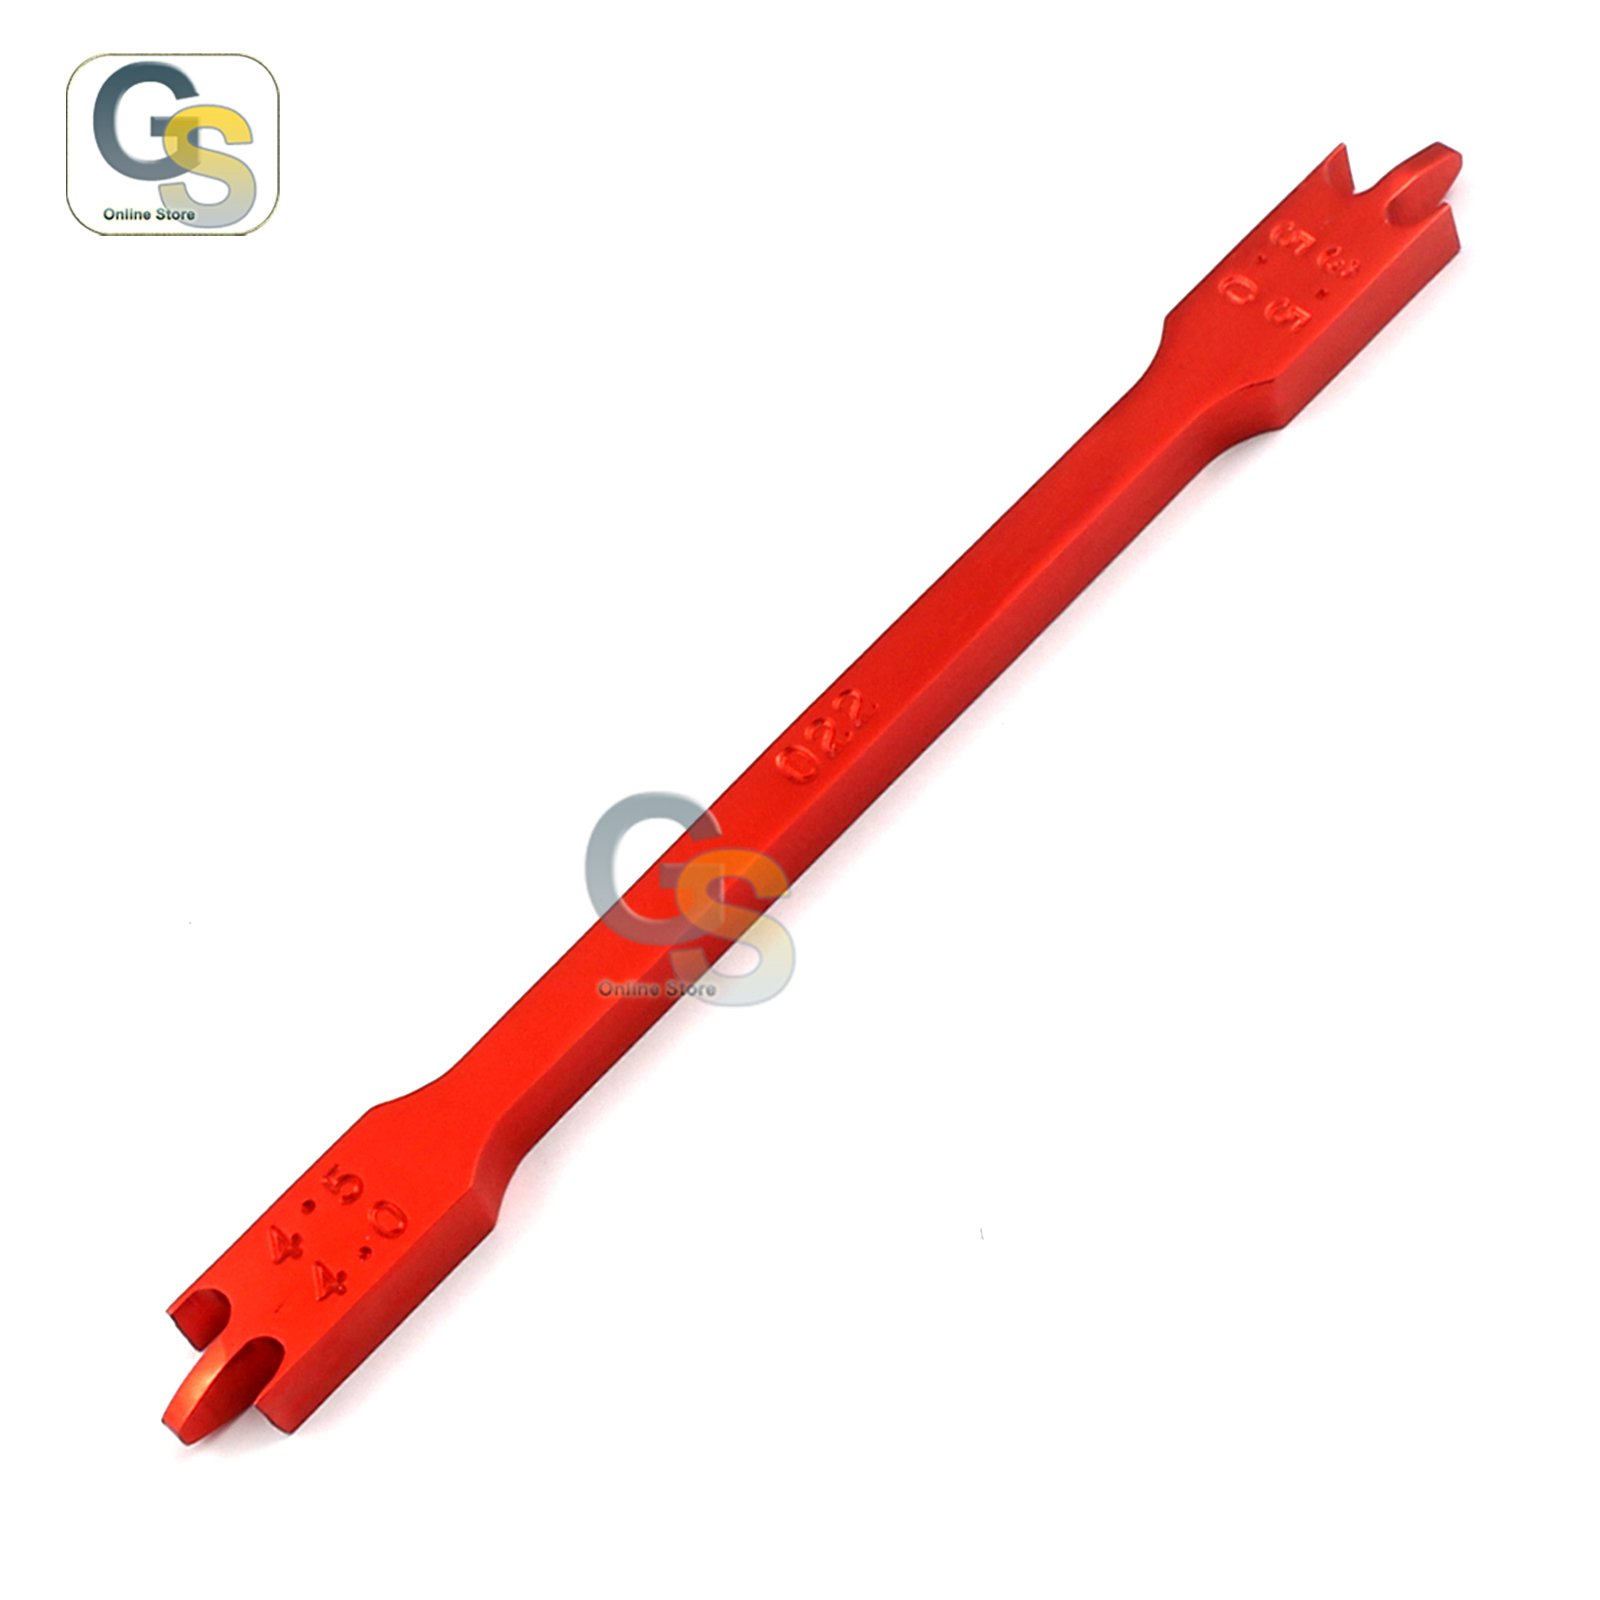 G.S BRACKET HEIGHT GAUGE RED COLOR 3.5MM-5MM022 ORTHODONTIC INSTRUMENTS BEST QUALITY